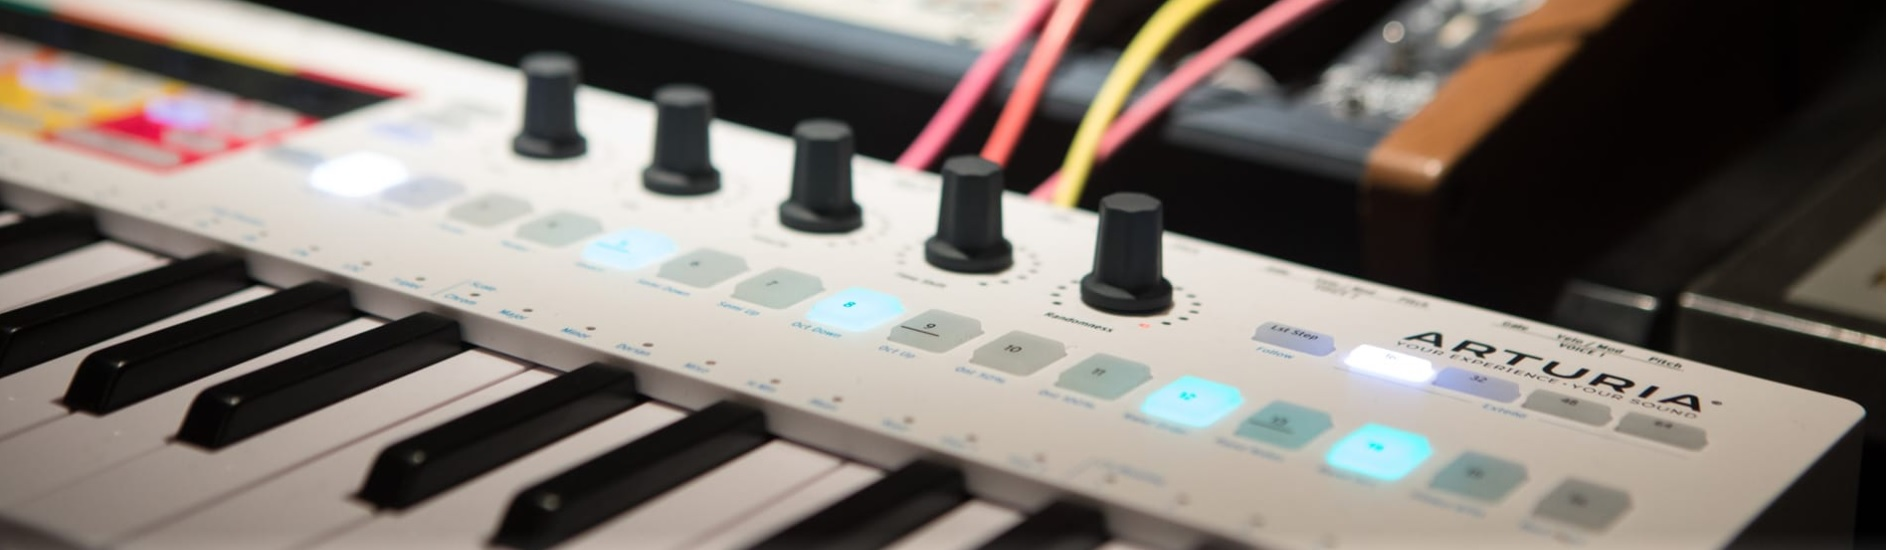 Write-up and review of the Arturia KeyStep Pro MIDI Controller and Sequencer